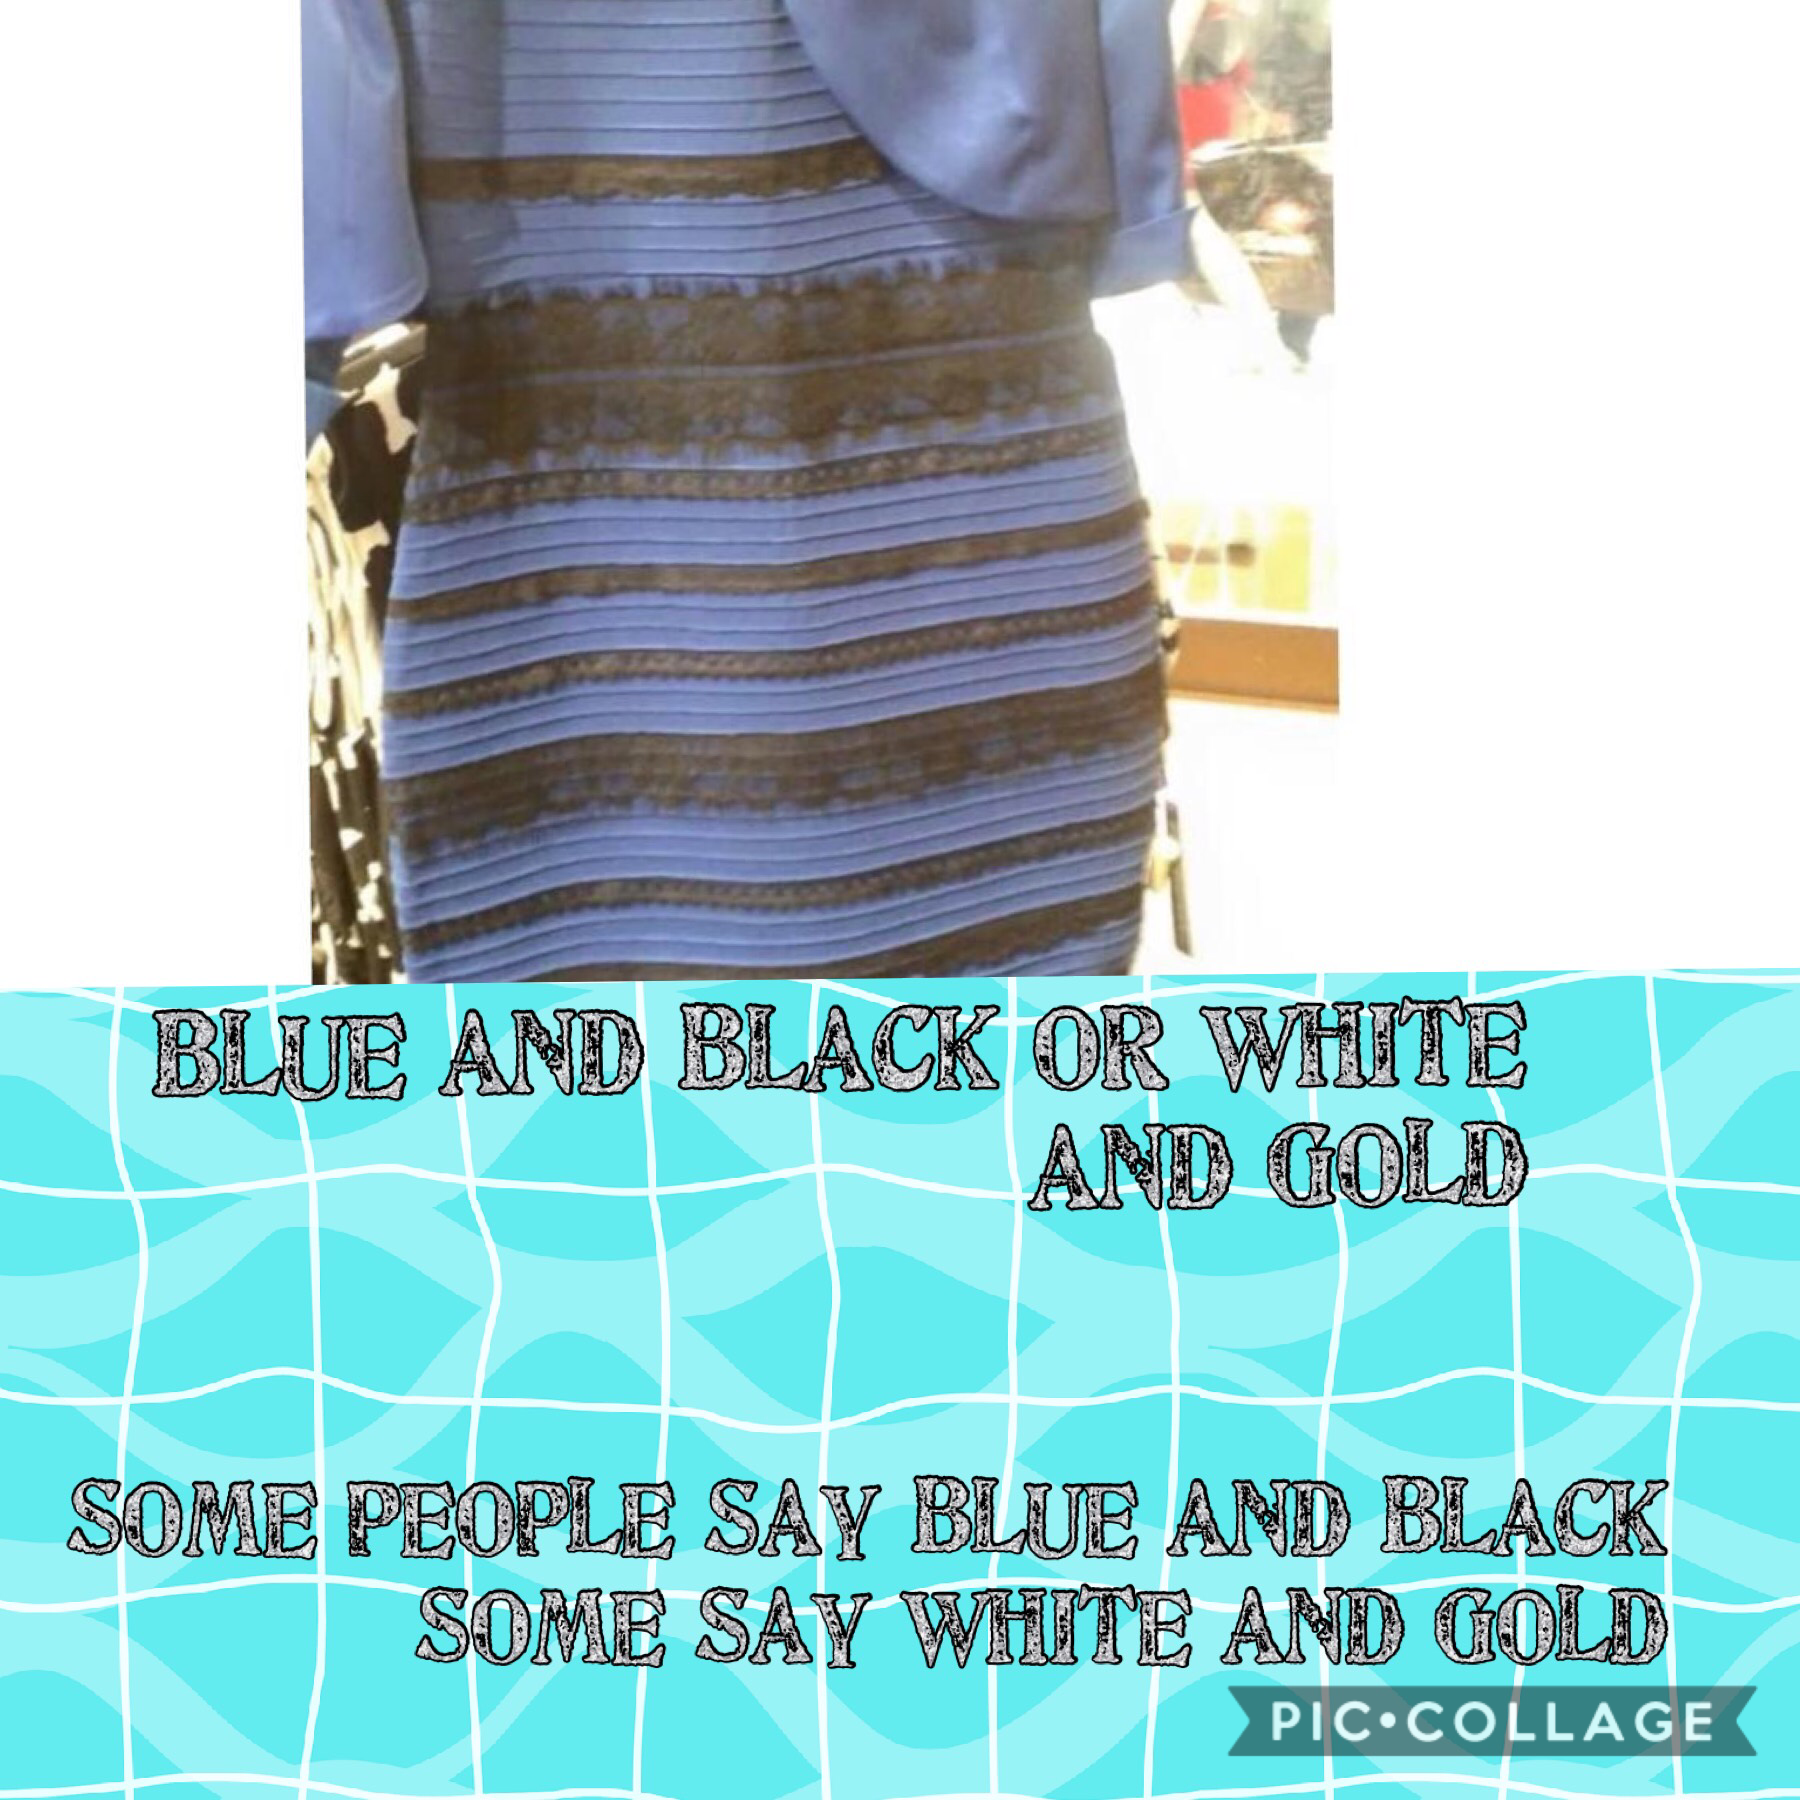 I see white and gold